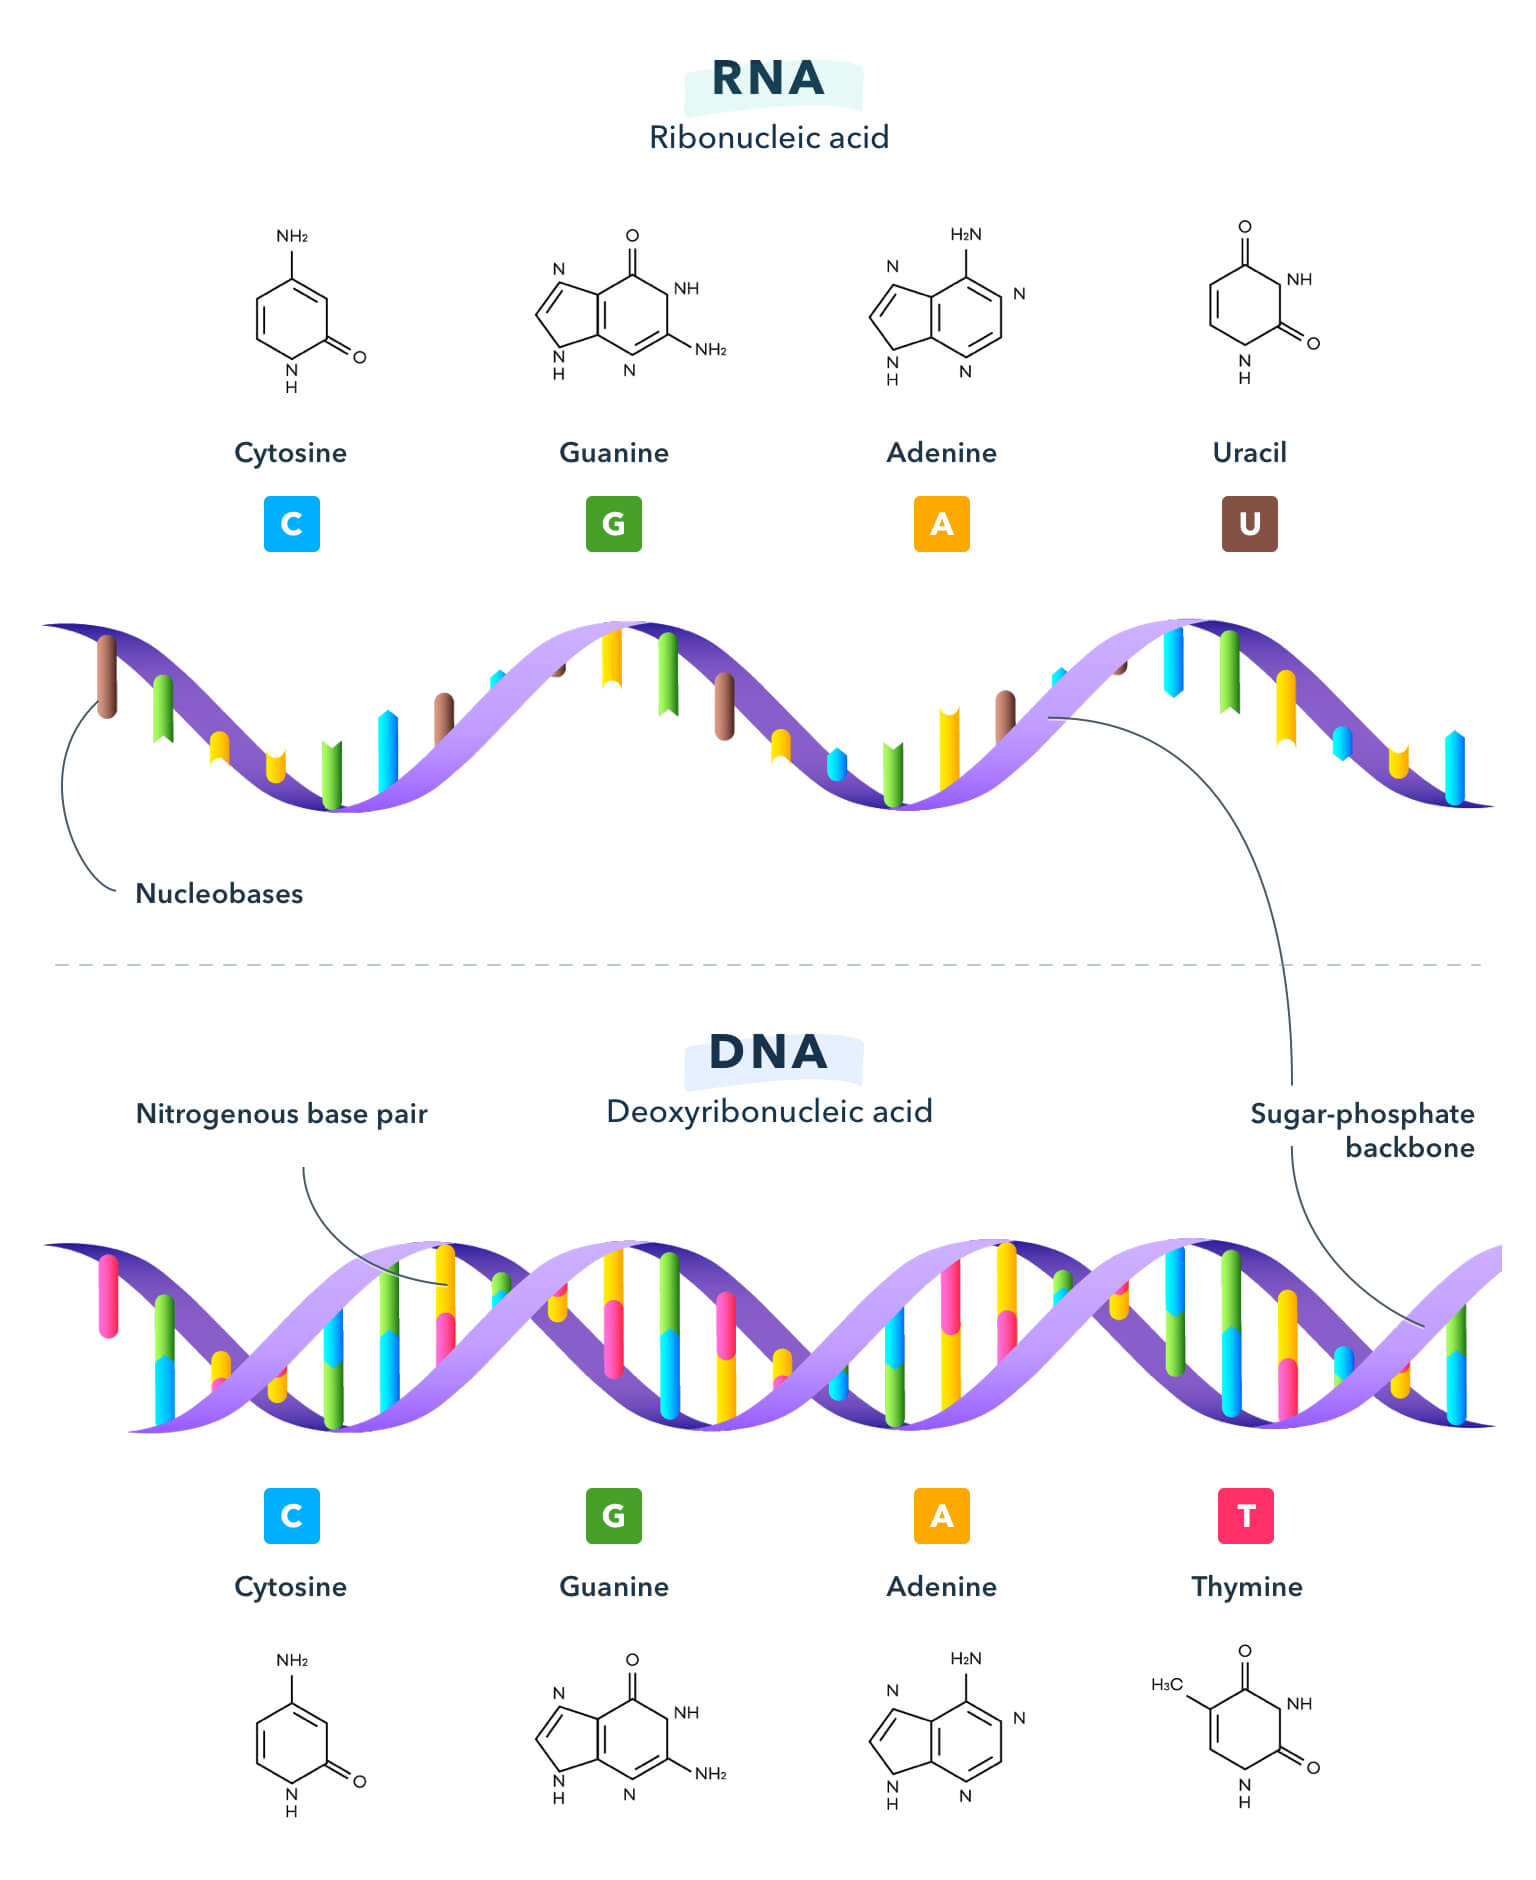 Diagram showing the components of RNA and DNA.